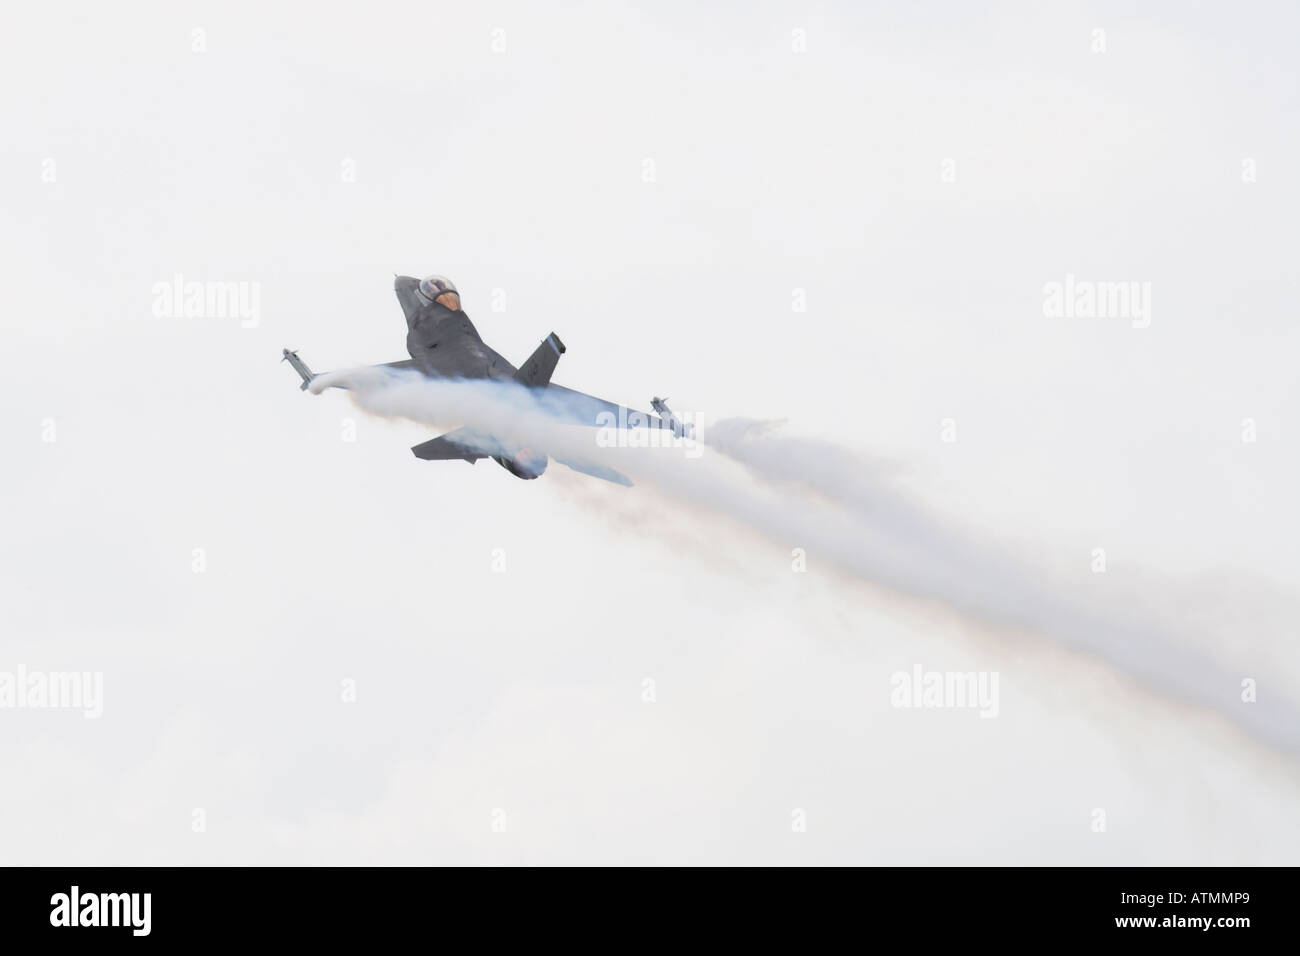 F16 Fighting Falcon taking off with afterburn trailing white marker smoke - Stock Image